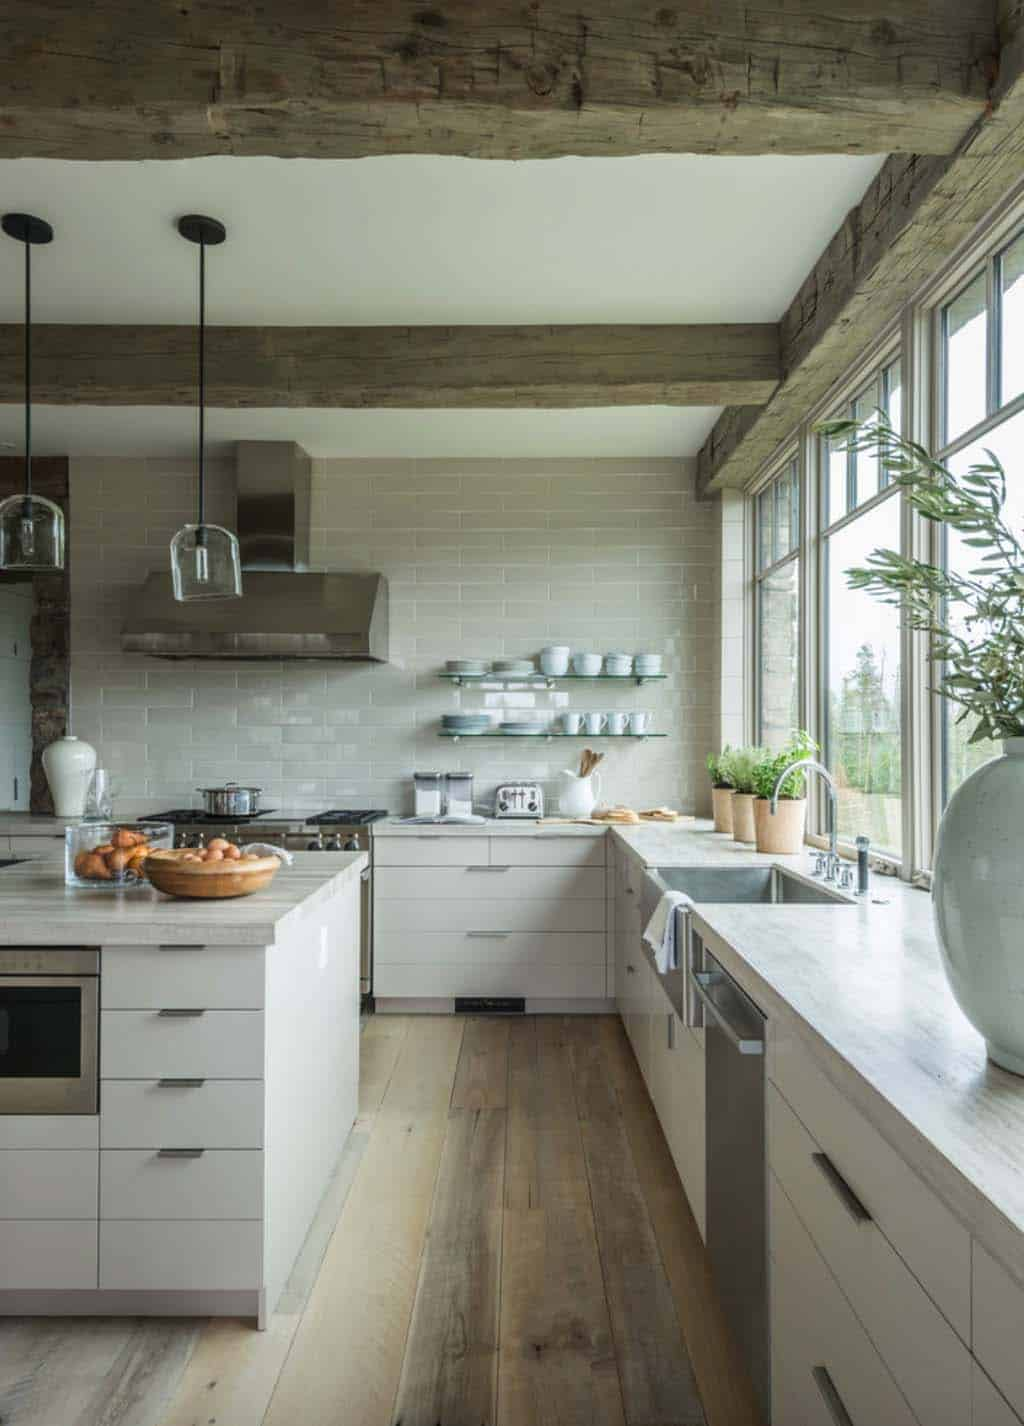 house-rustic-kitchen